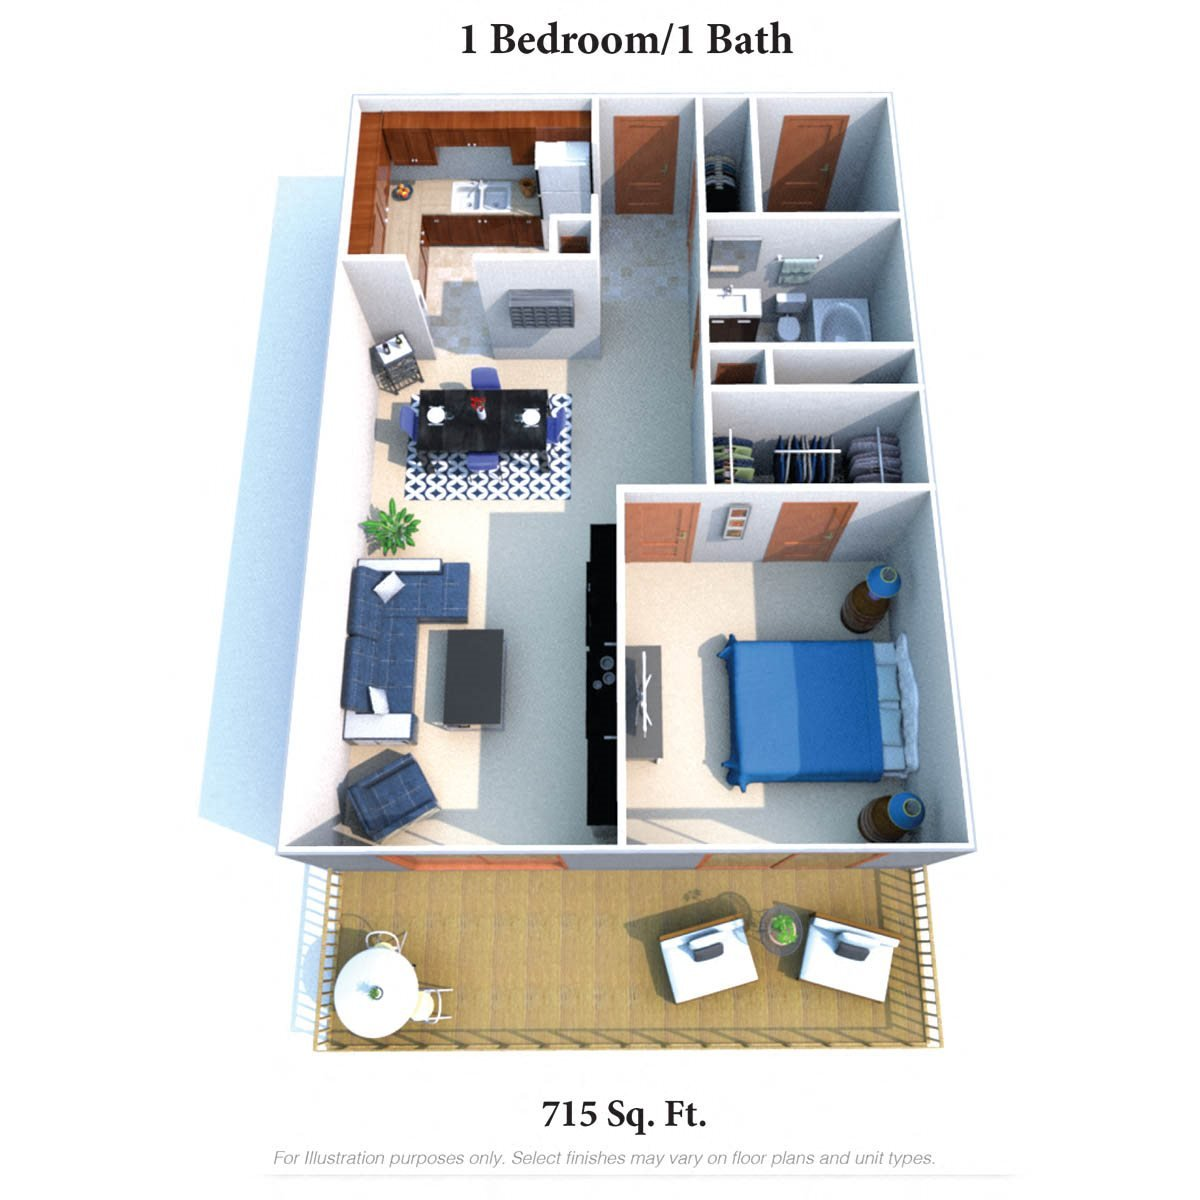 Floor Plans of Indian Lookout Apartments in Cincinnati, OH